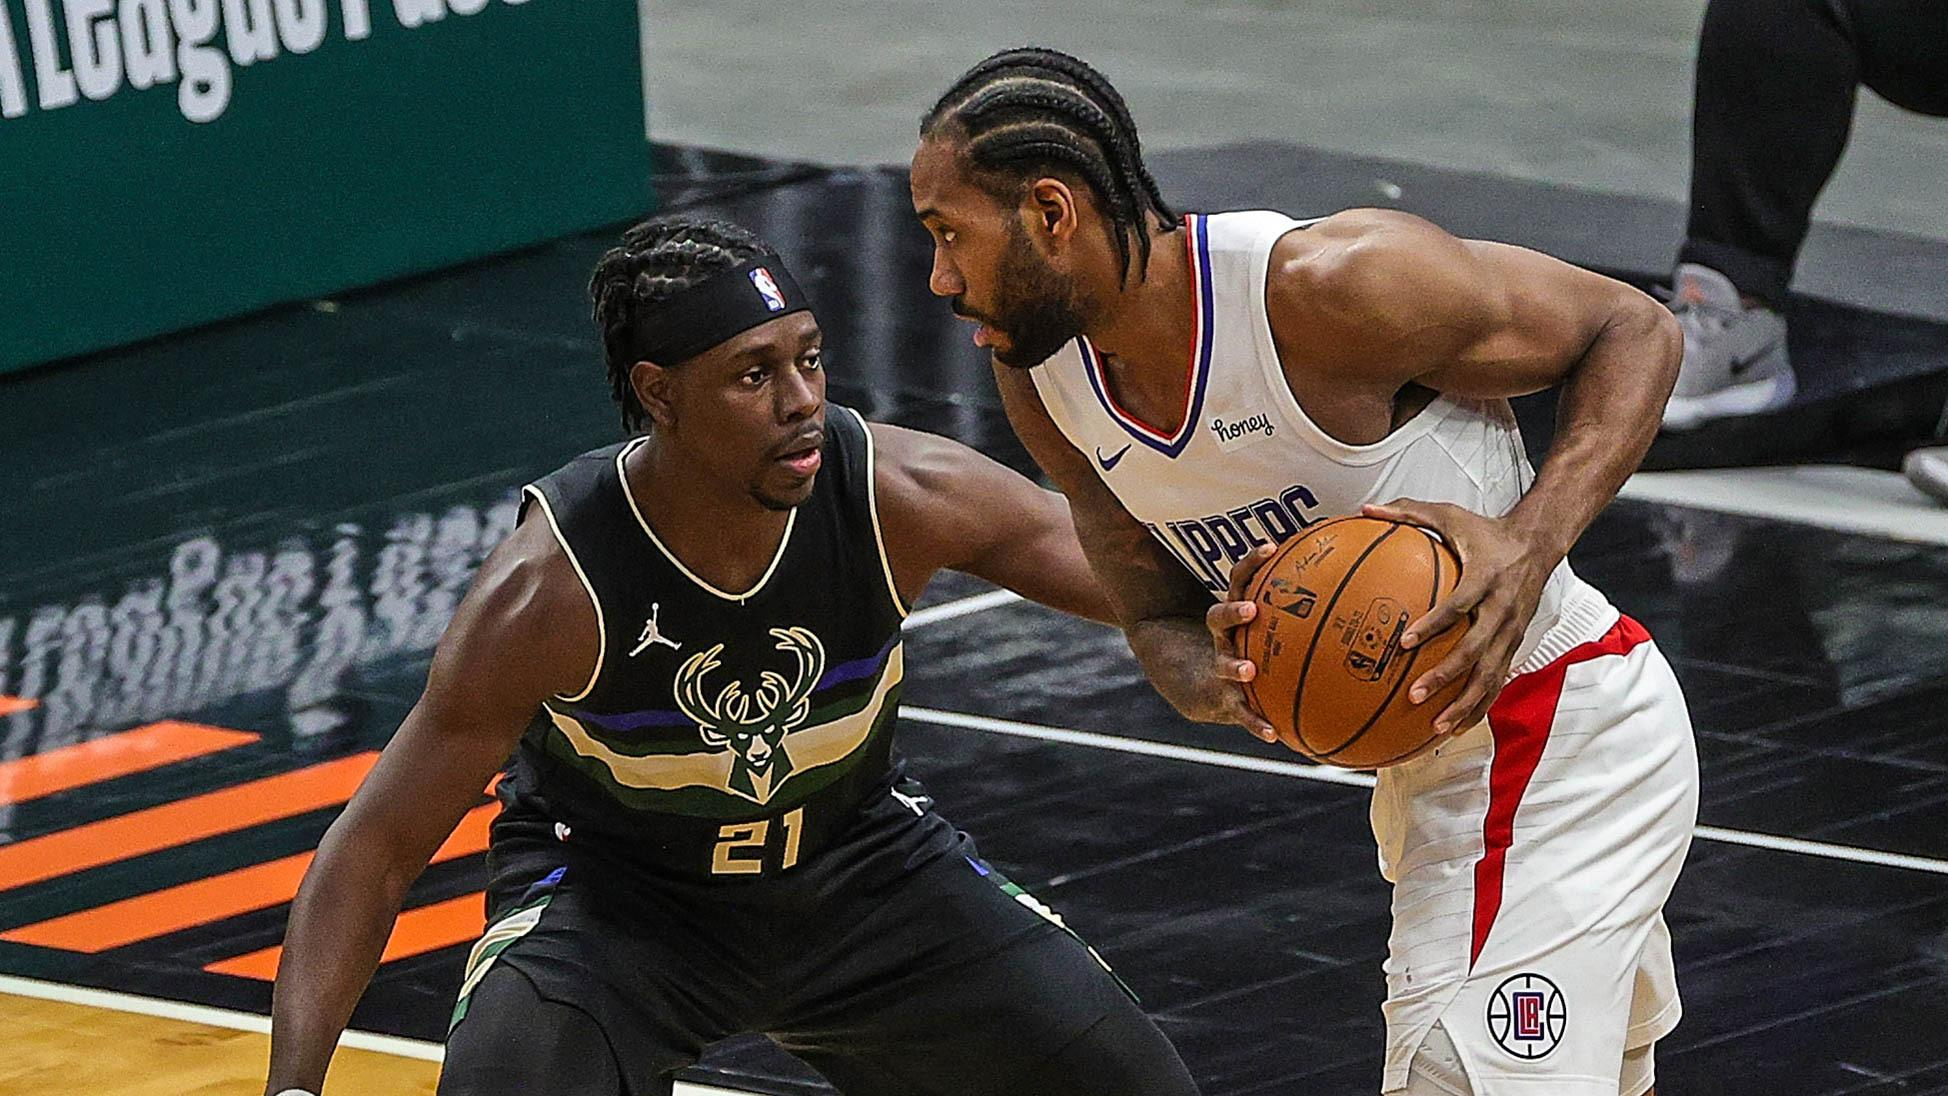 Highlights: Bucks 105 - Clippers 100 | 2.28.21